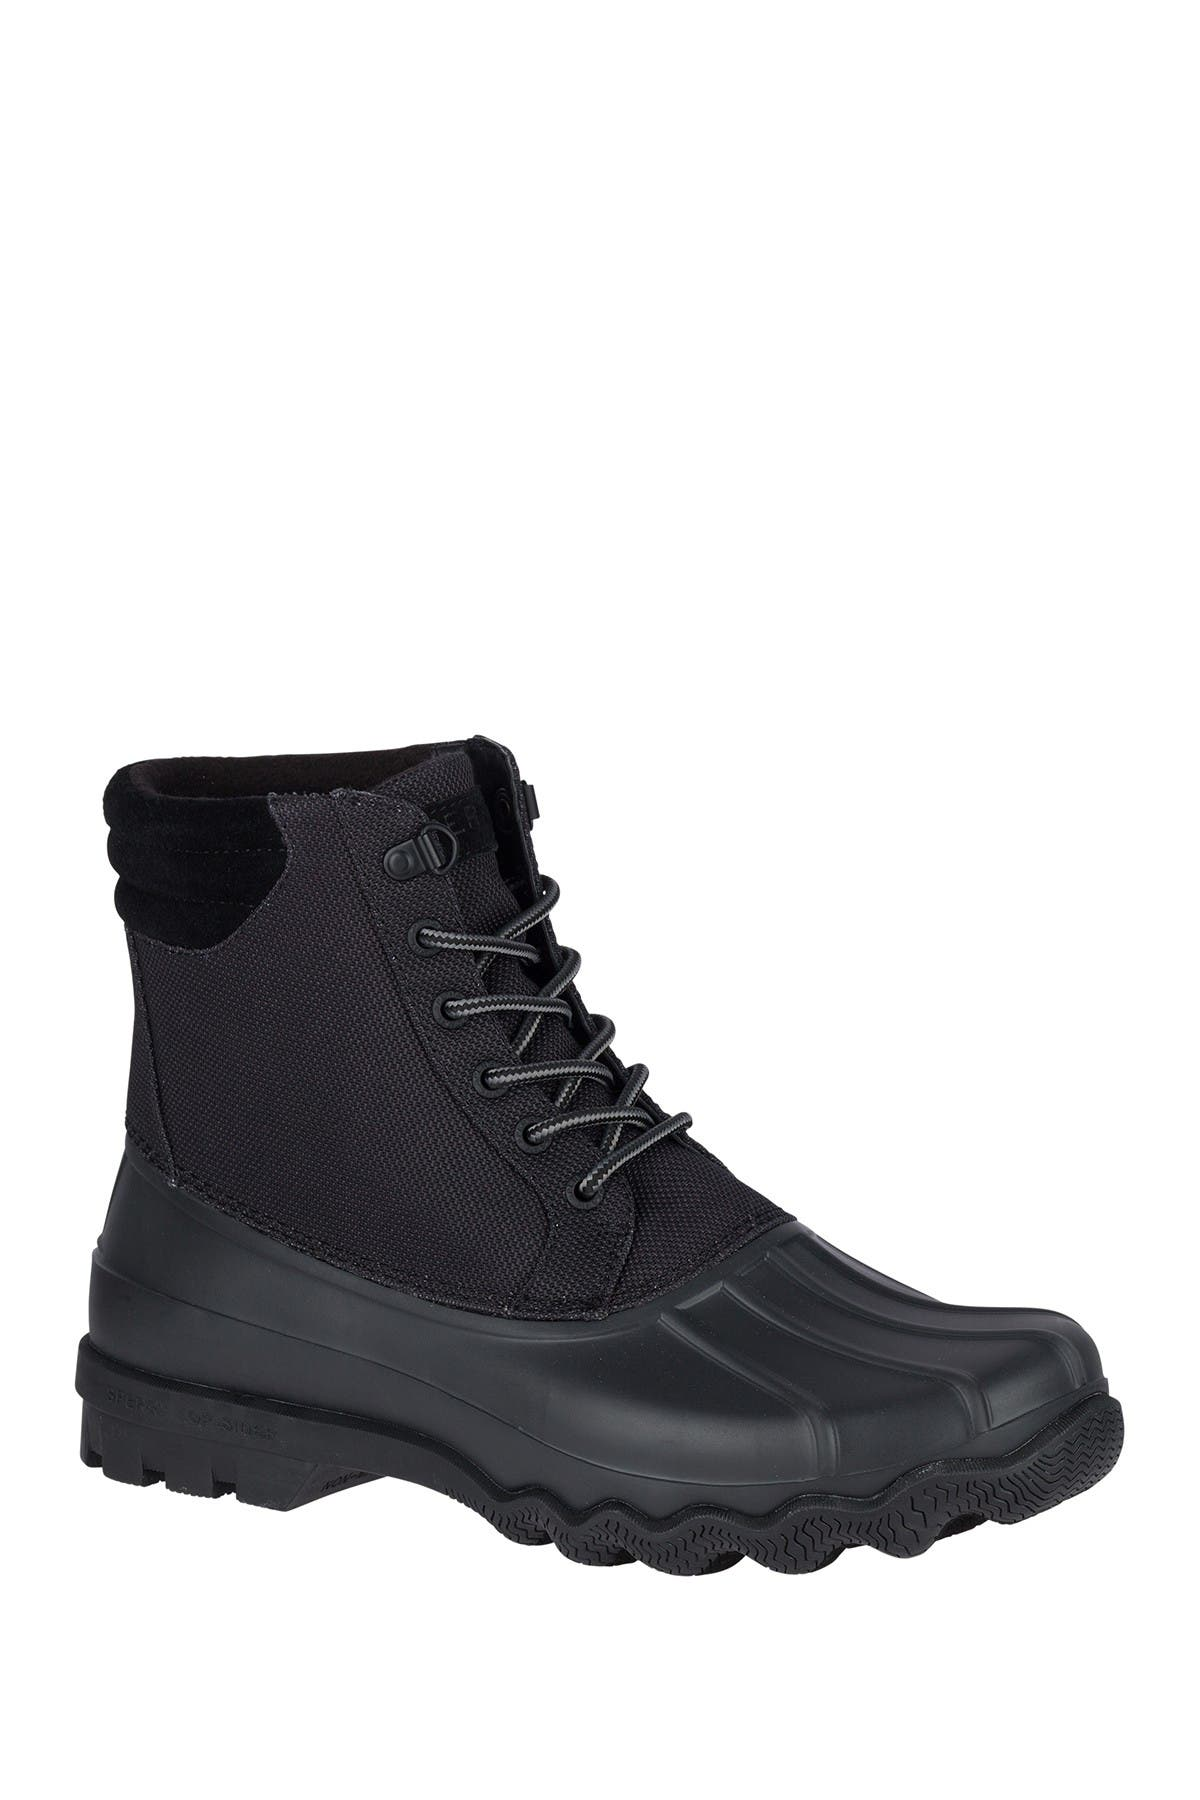 Image of Sperry Avenue Cordura Waterproof Lace-Up Boot